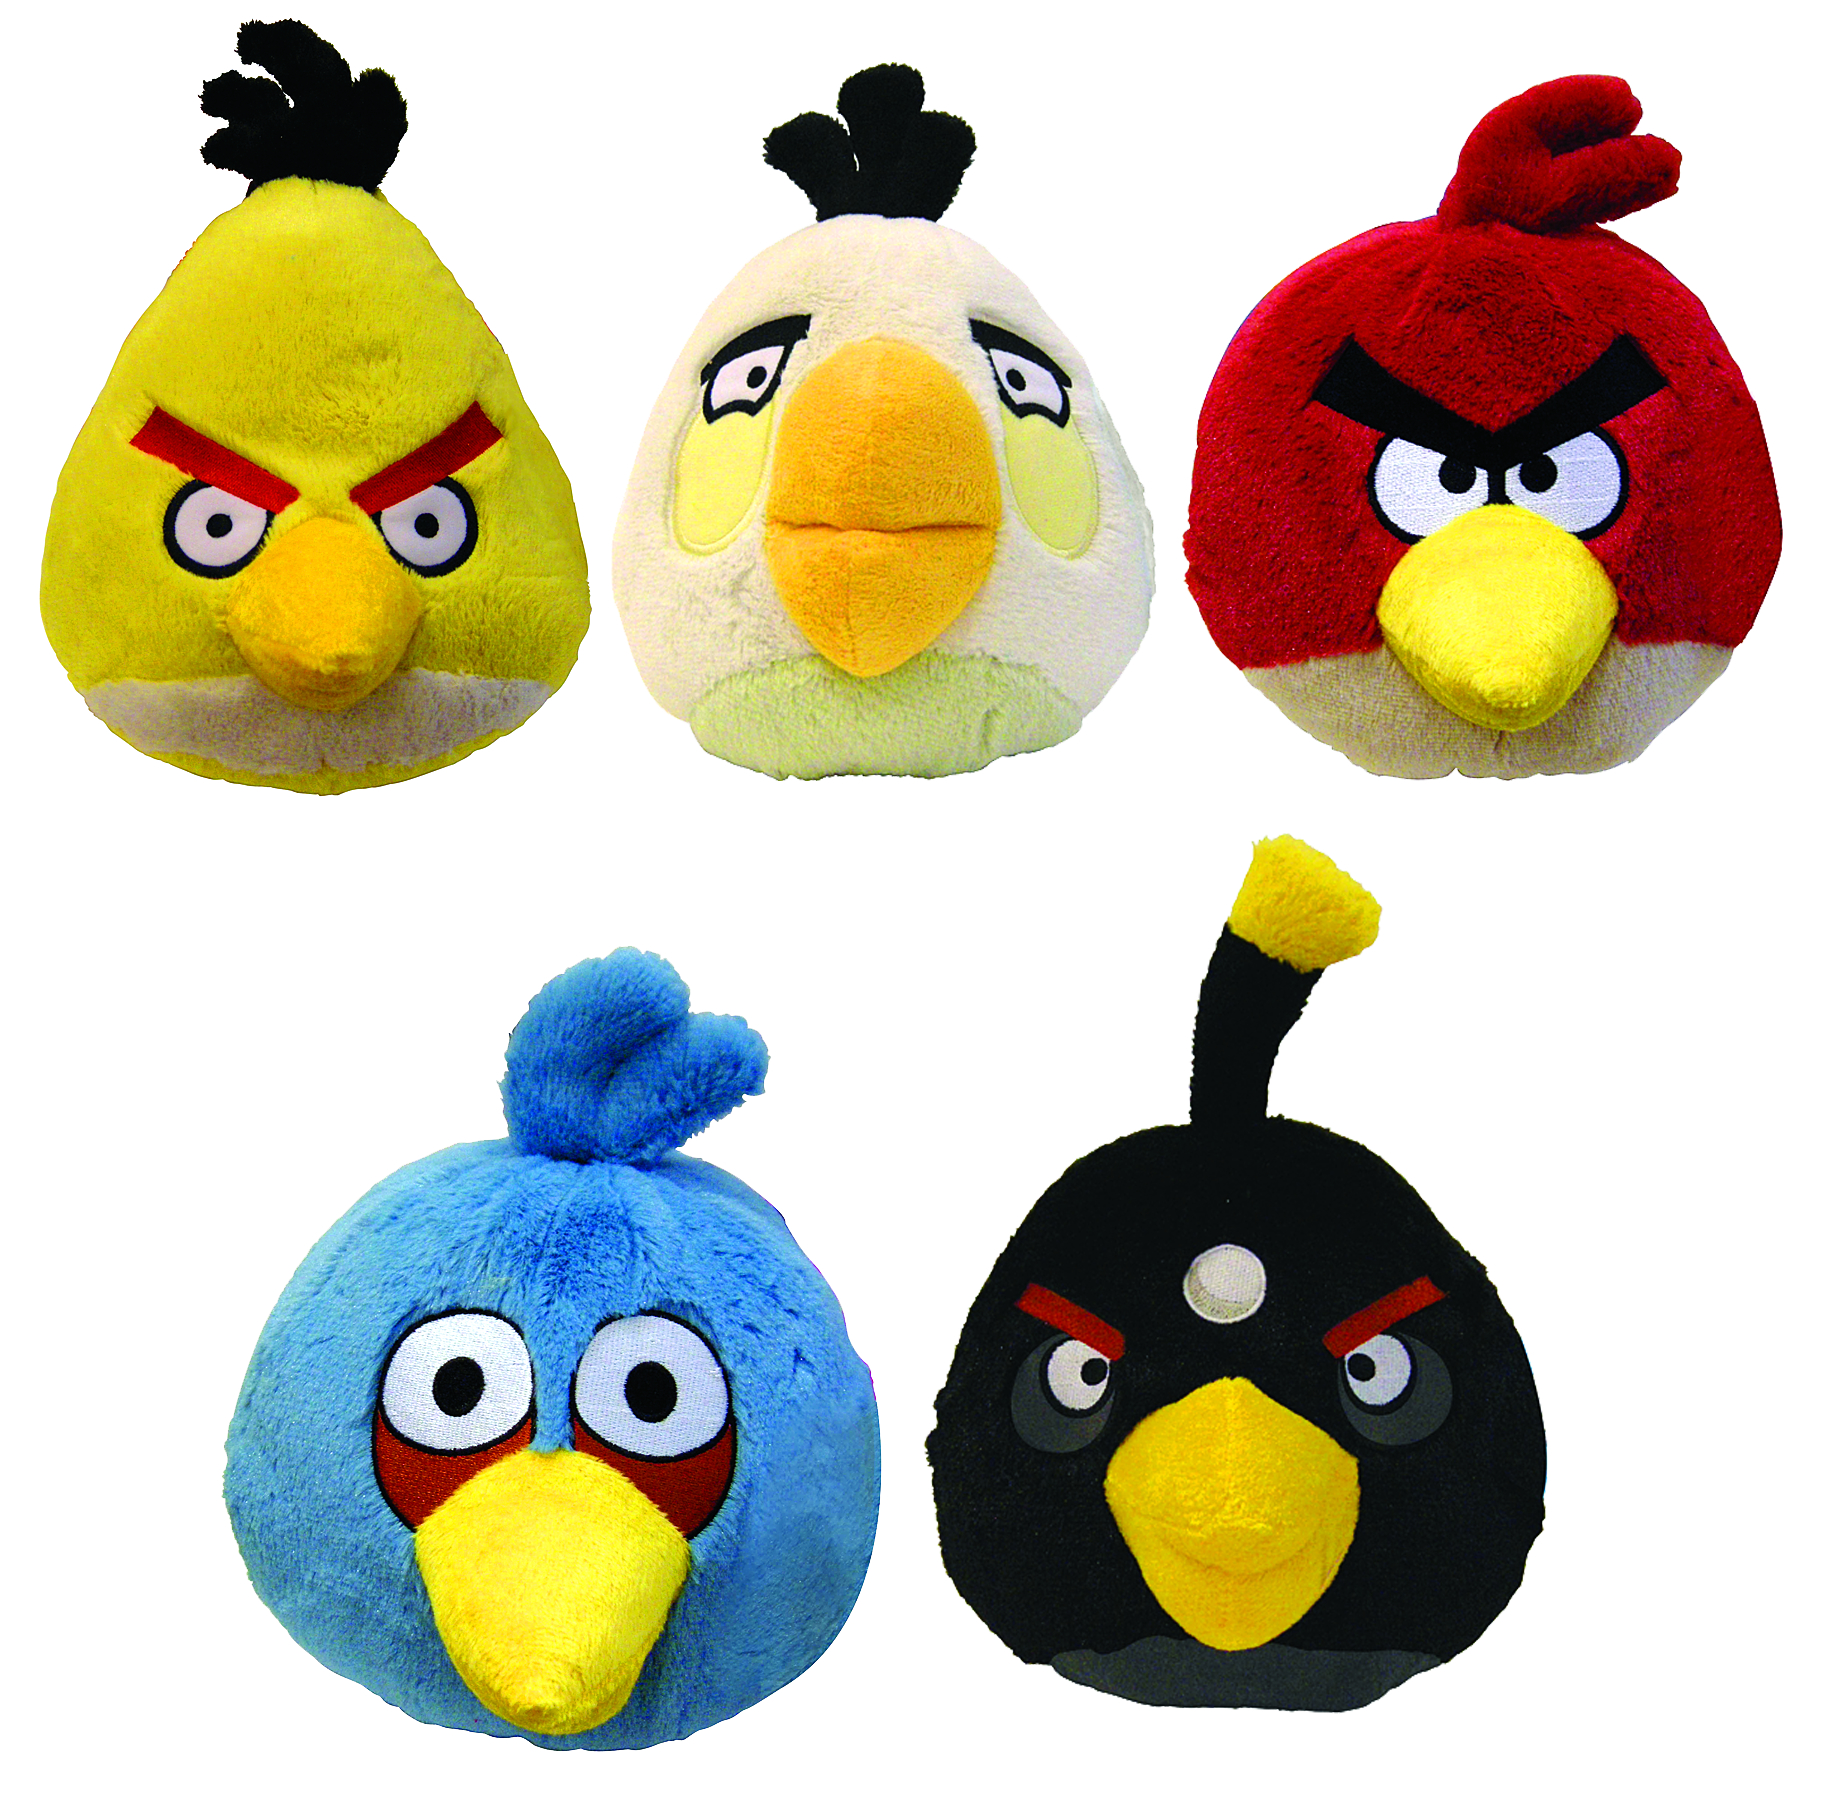 Angry Birds Toys With Sound : Previewsworld angry birds in plush w sound asst net